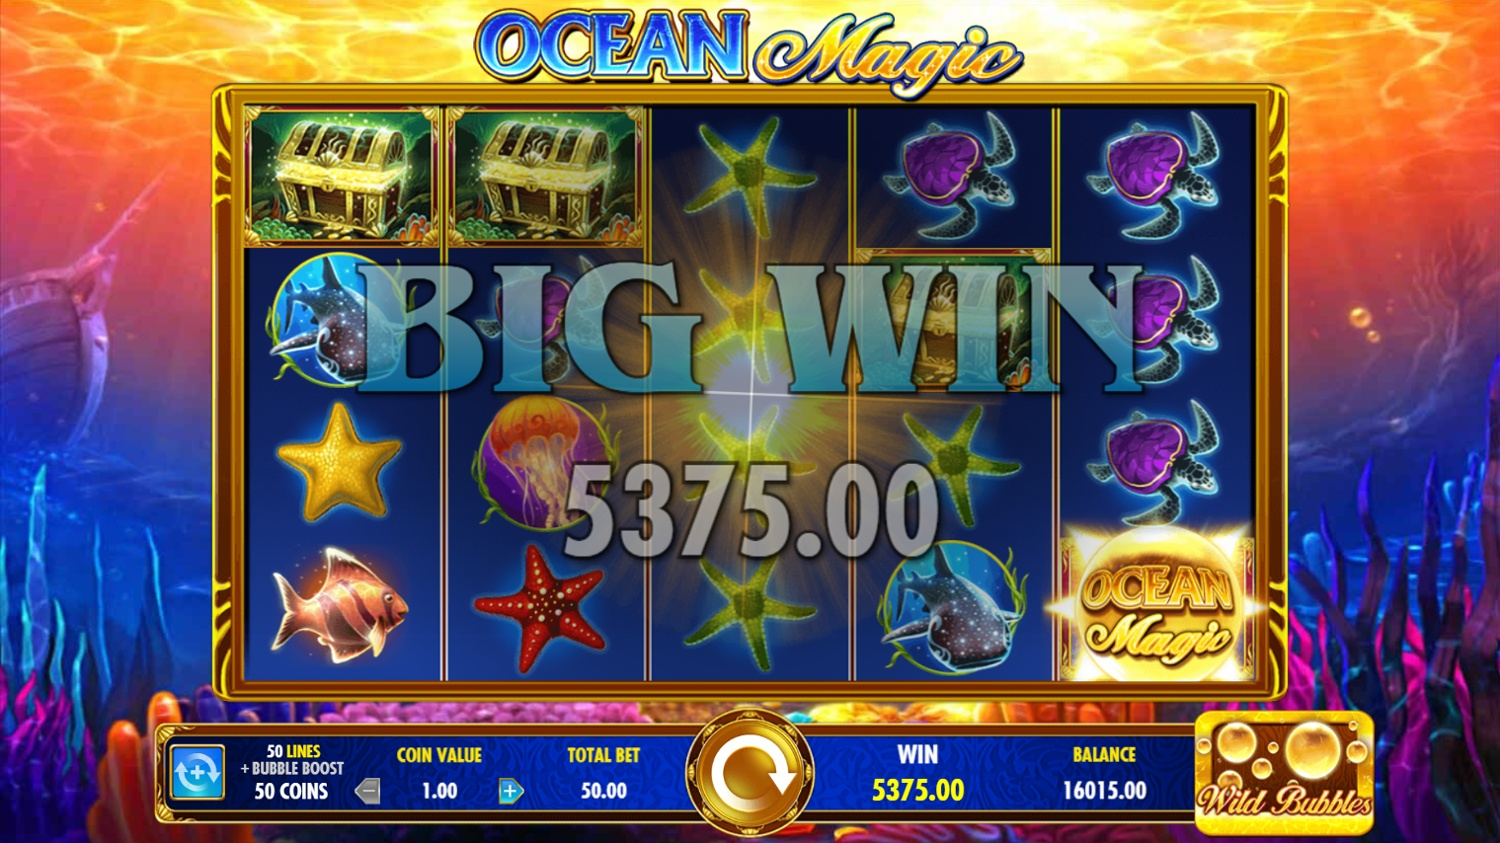 Betting online odds 58911